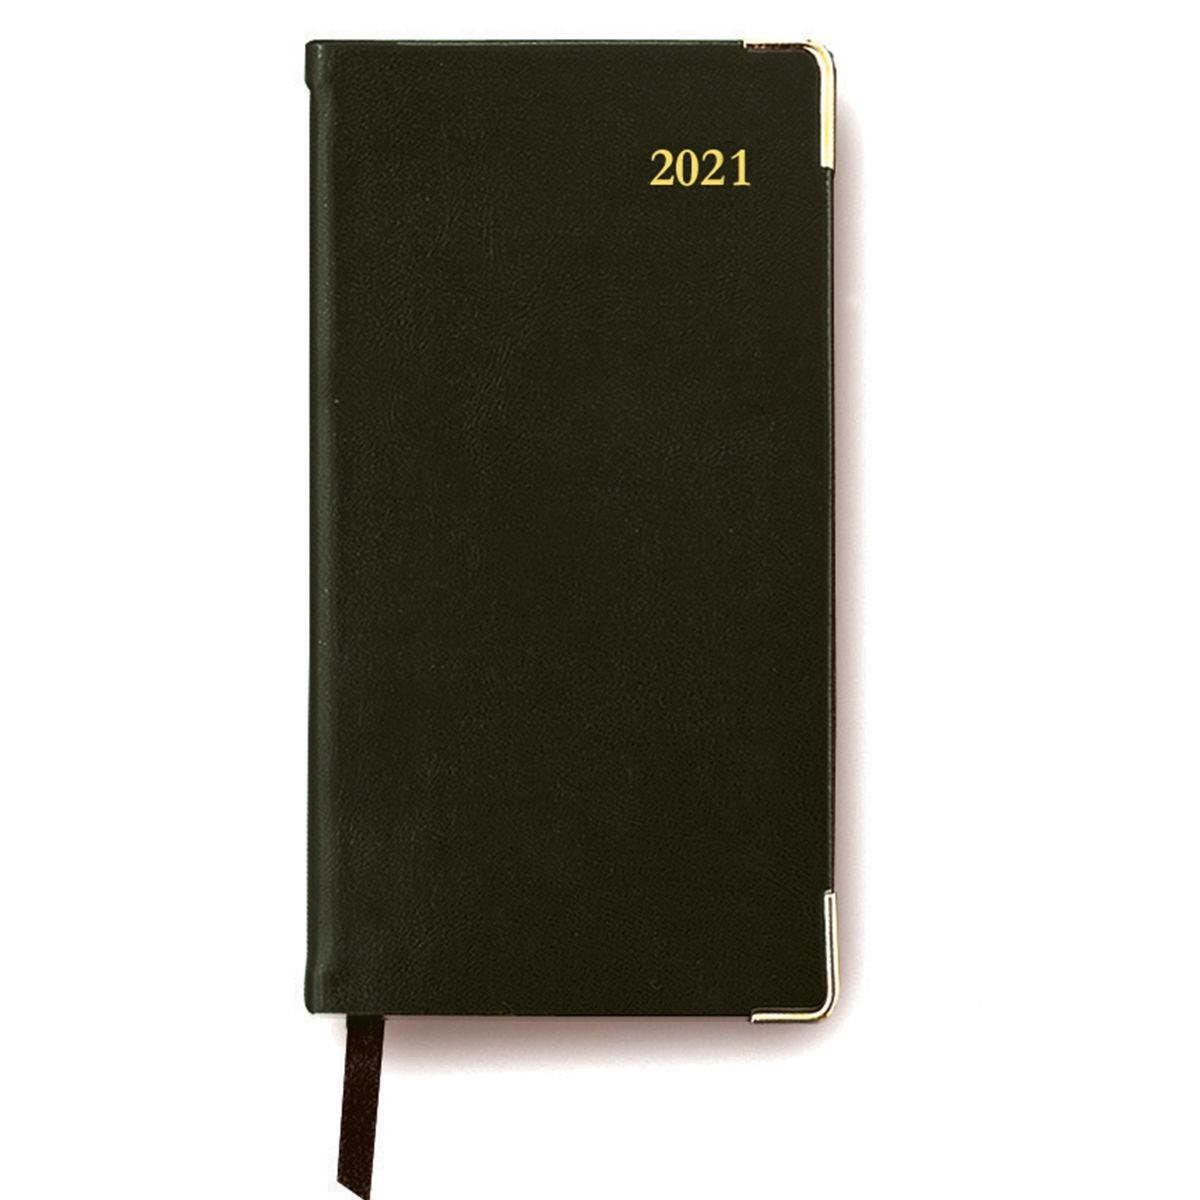 Collins Classic Appointments Diary Slim Week to View 2021 - Black